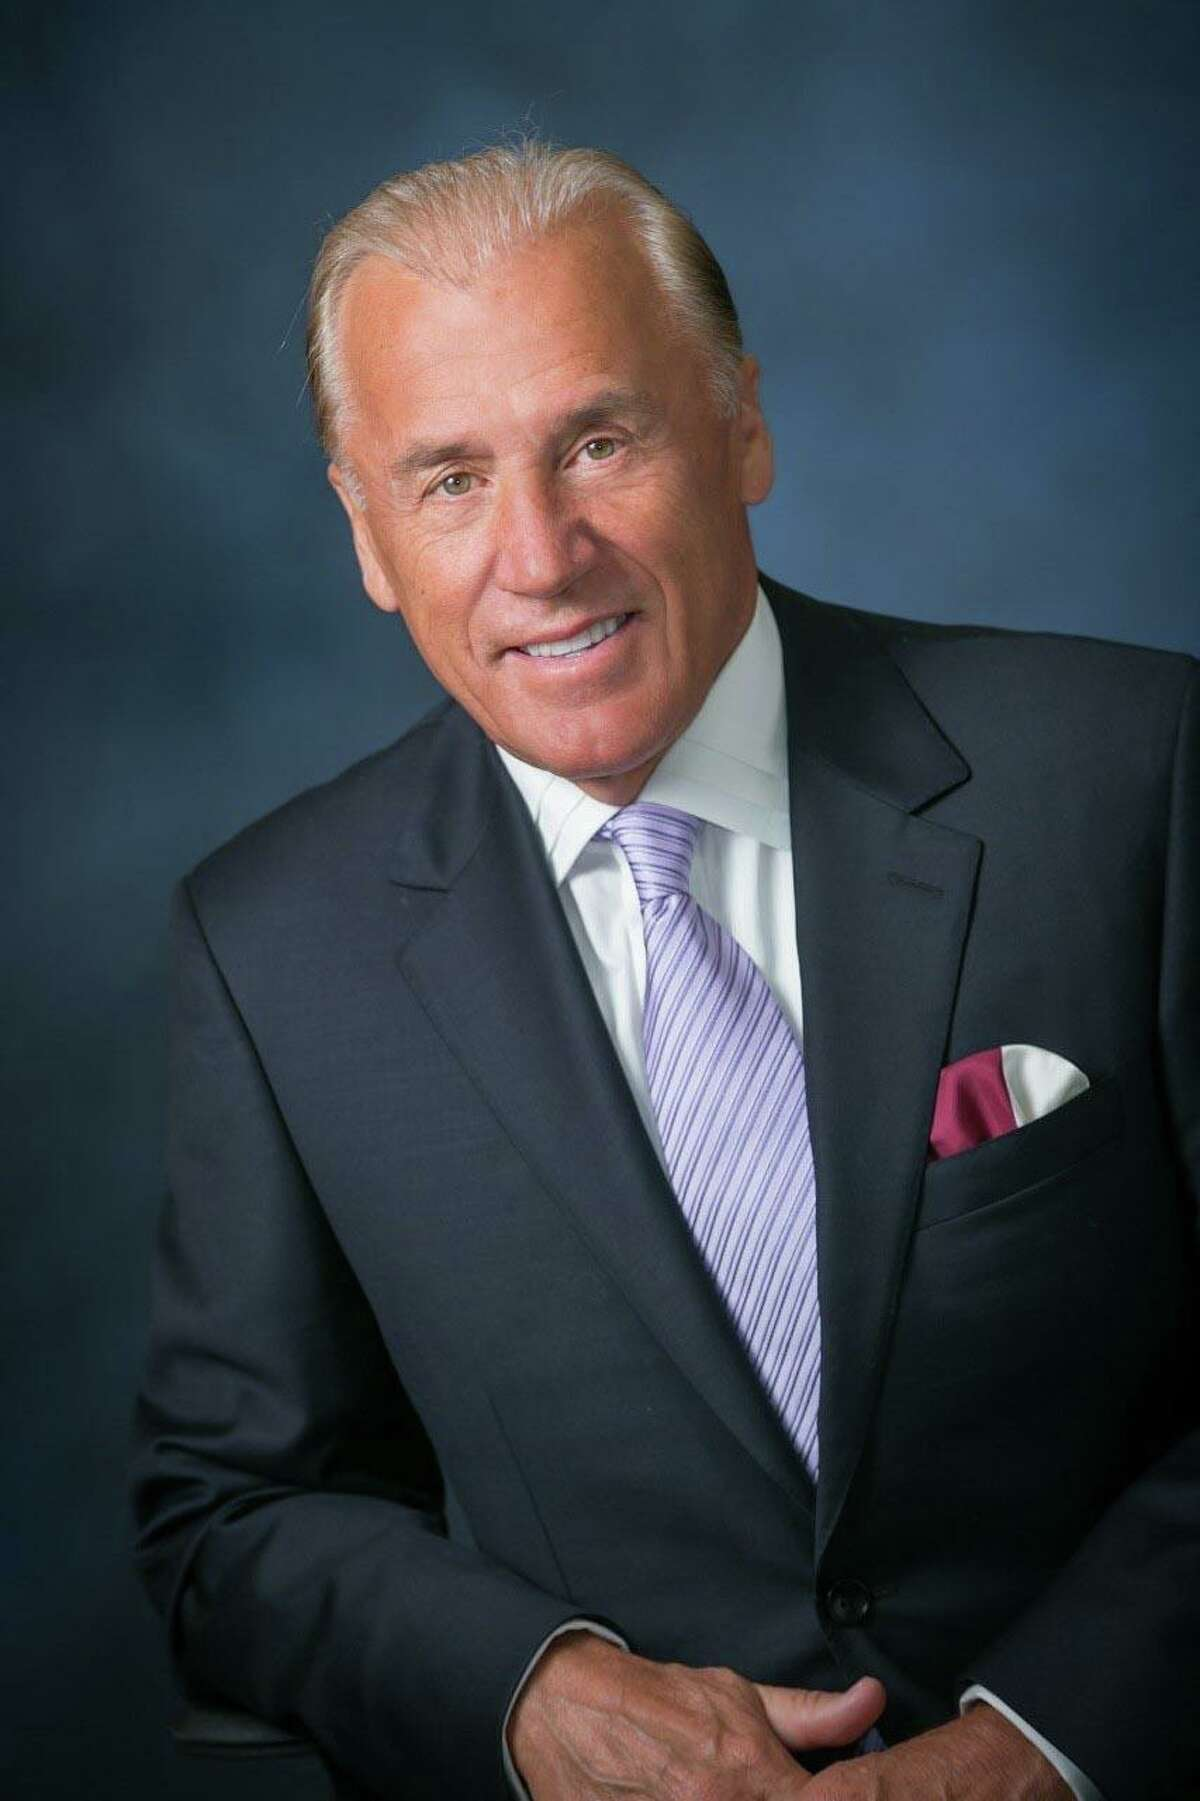 Dean Metropoulos is the new chairman and interim CEO of Stamford, Conn.-based Nestle Waters North America.